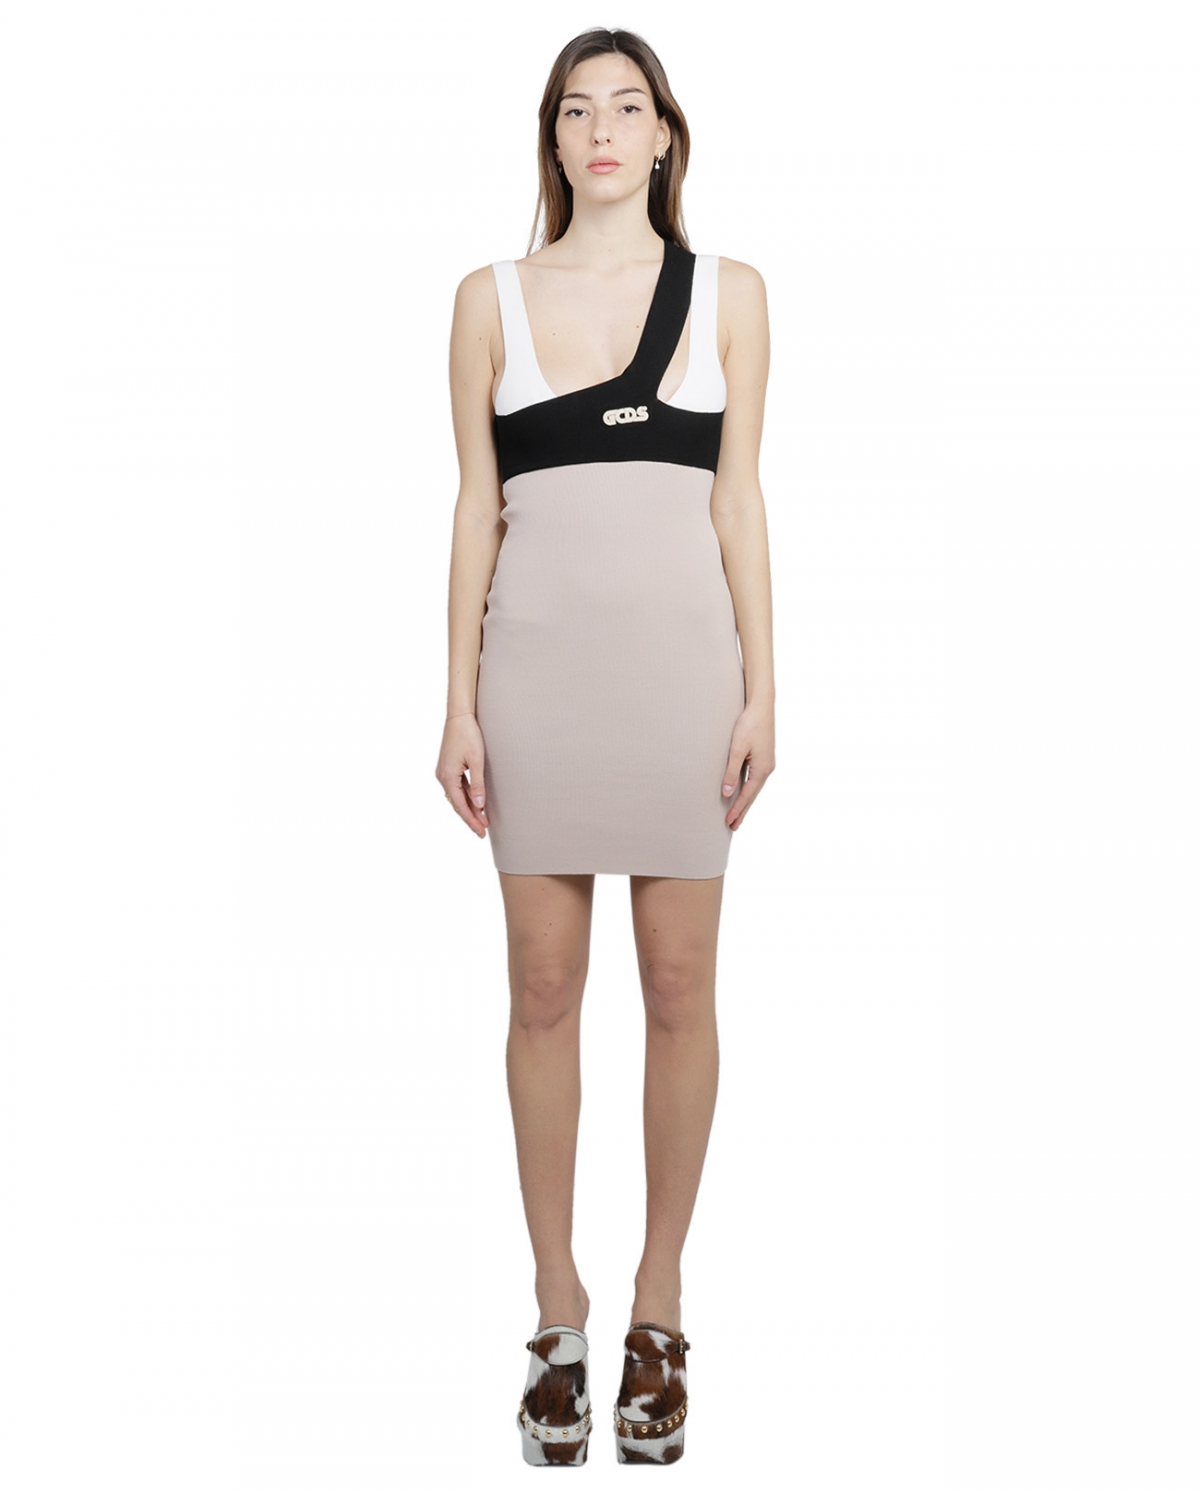 CGDS grey layer dress